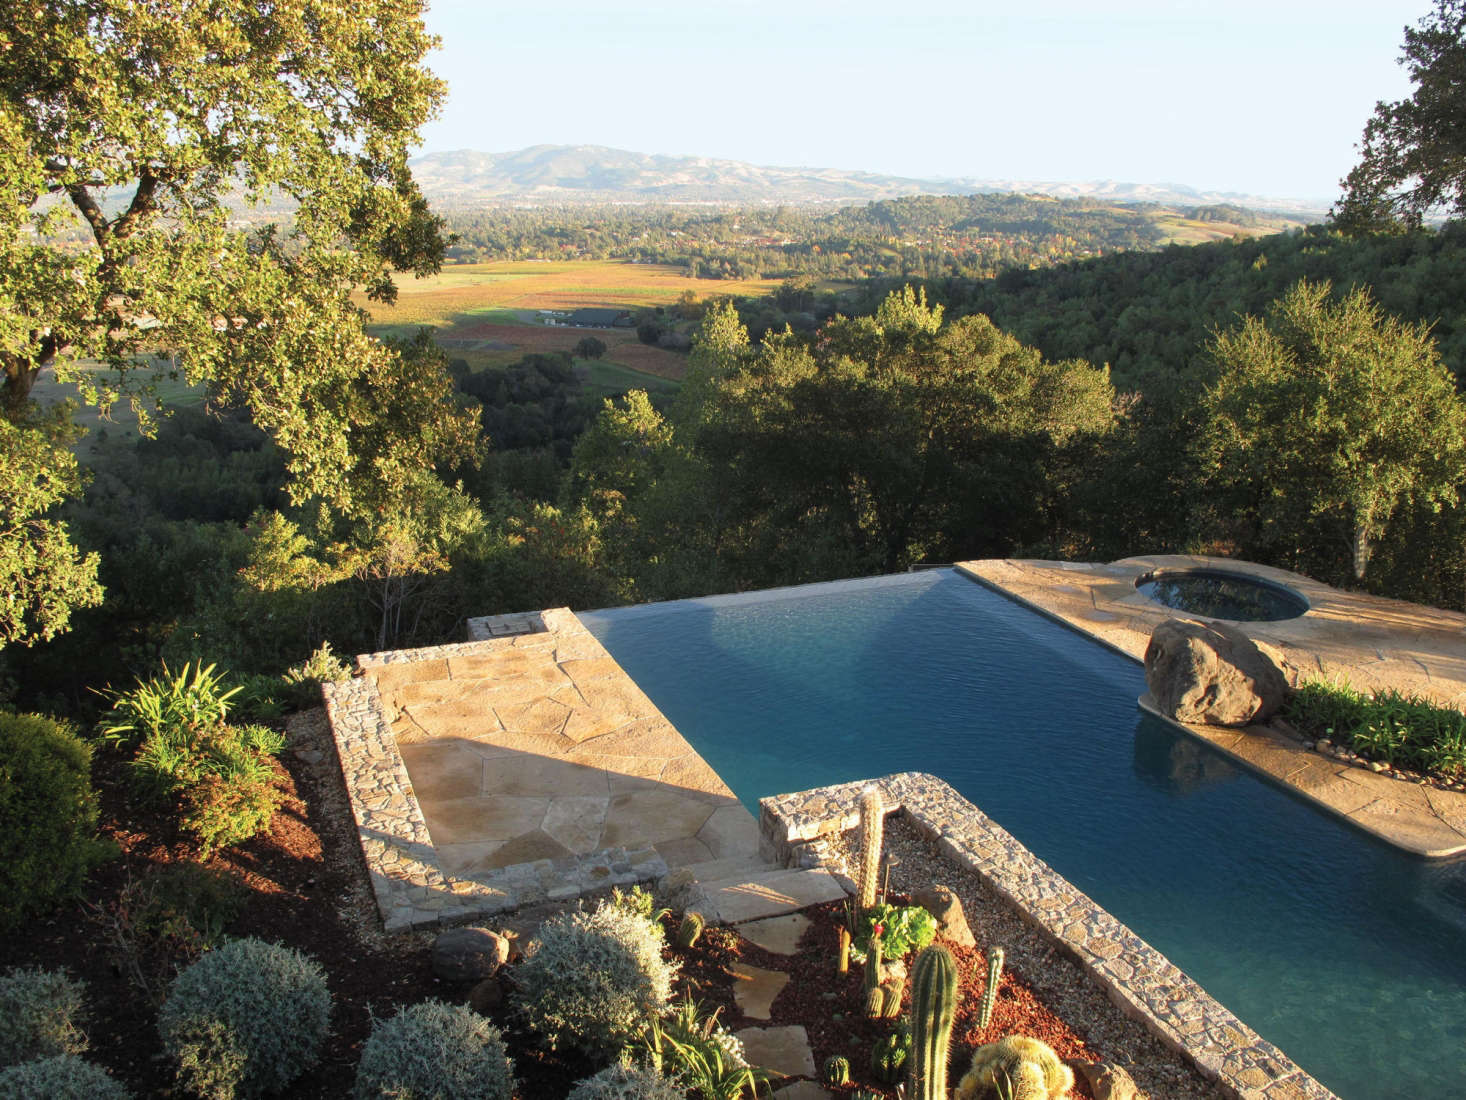 A swimming pool at a Napa Hills estate, by Scott Lewis Landscape Architecture. See more in Ask the Expert: An Insider's Guide to Swimming Pool Design from Scott Lewis. Photograph by Scott Lewis Landscape Architecture.